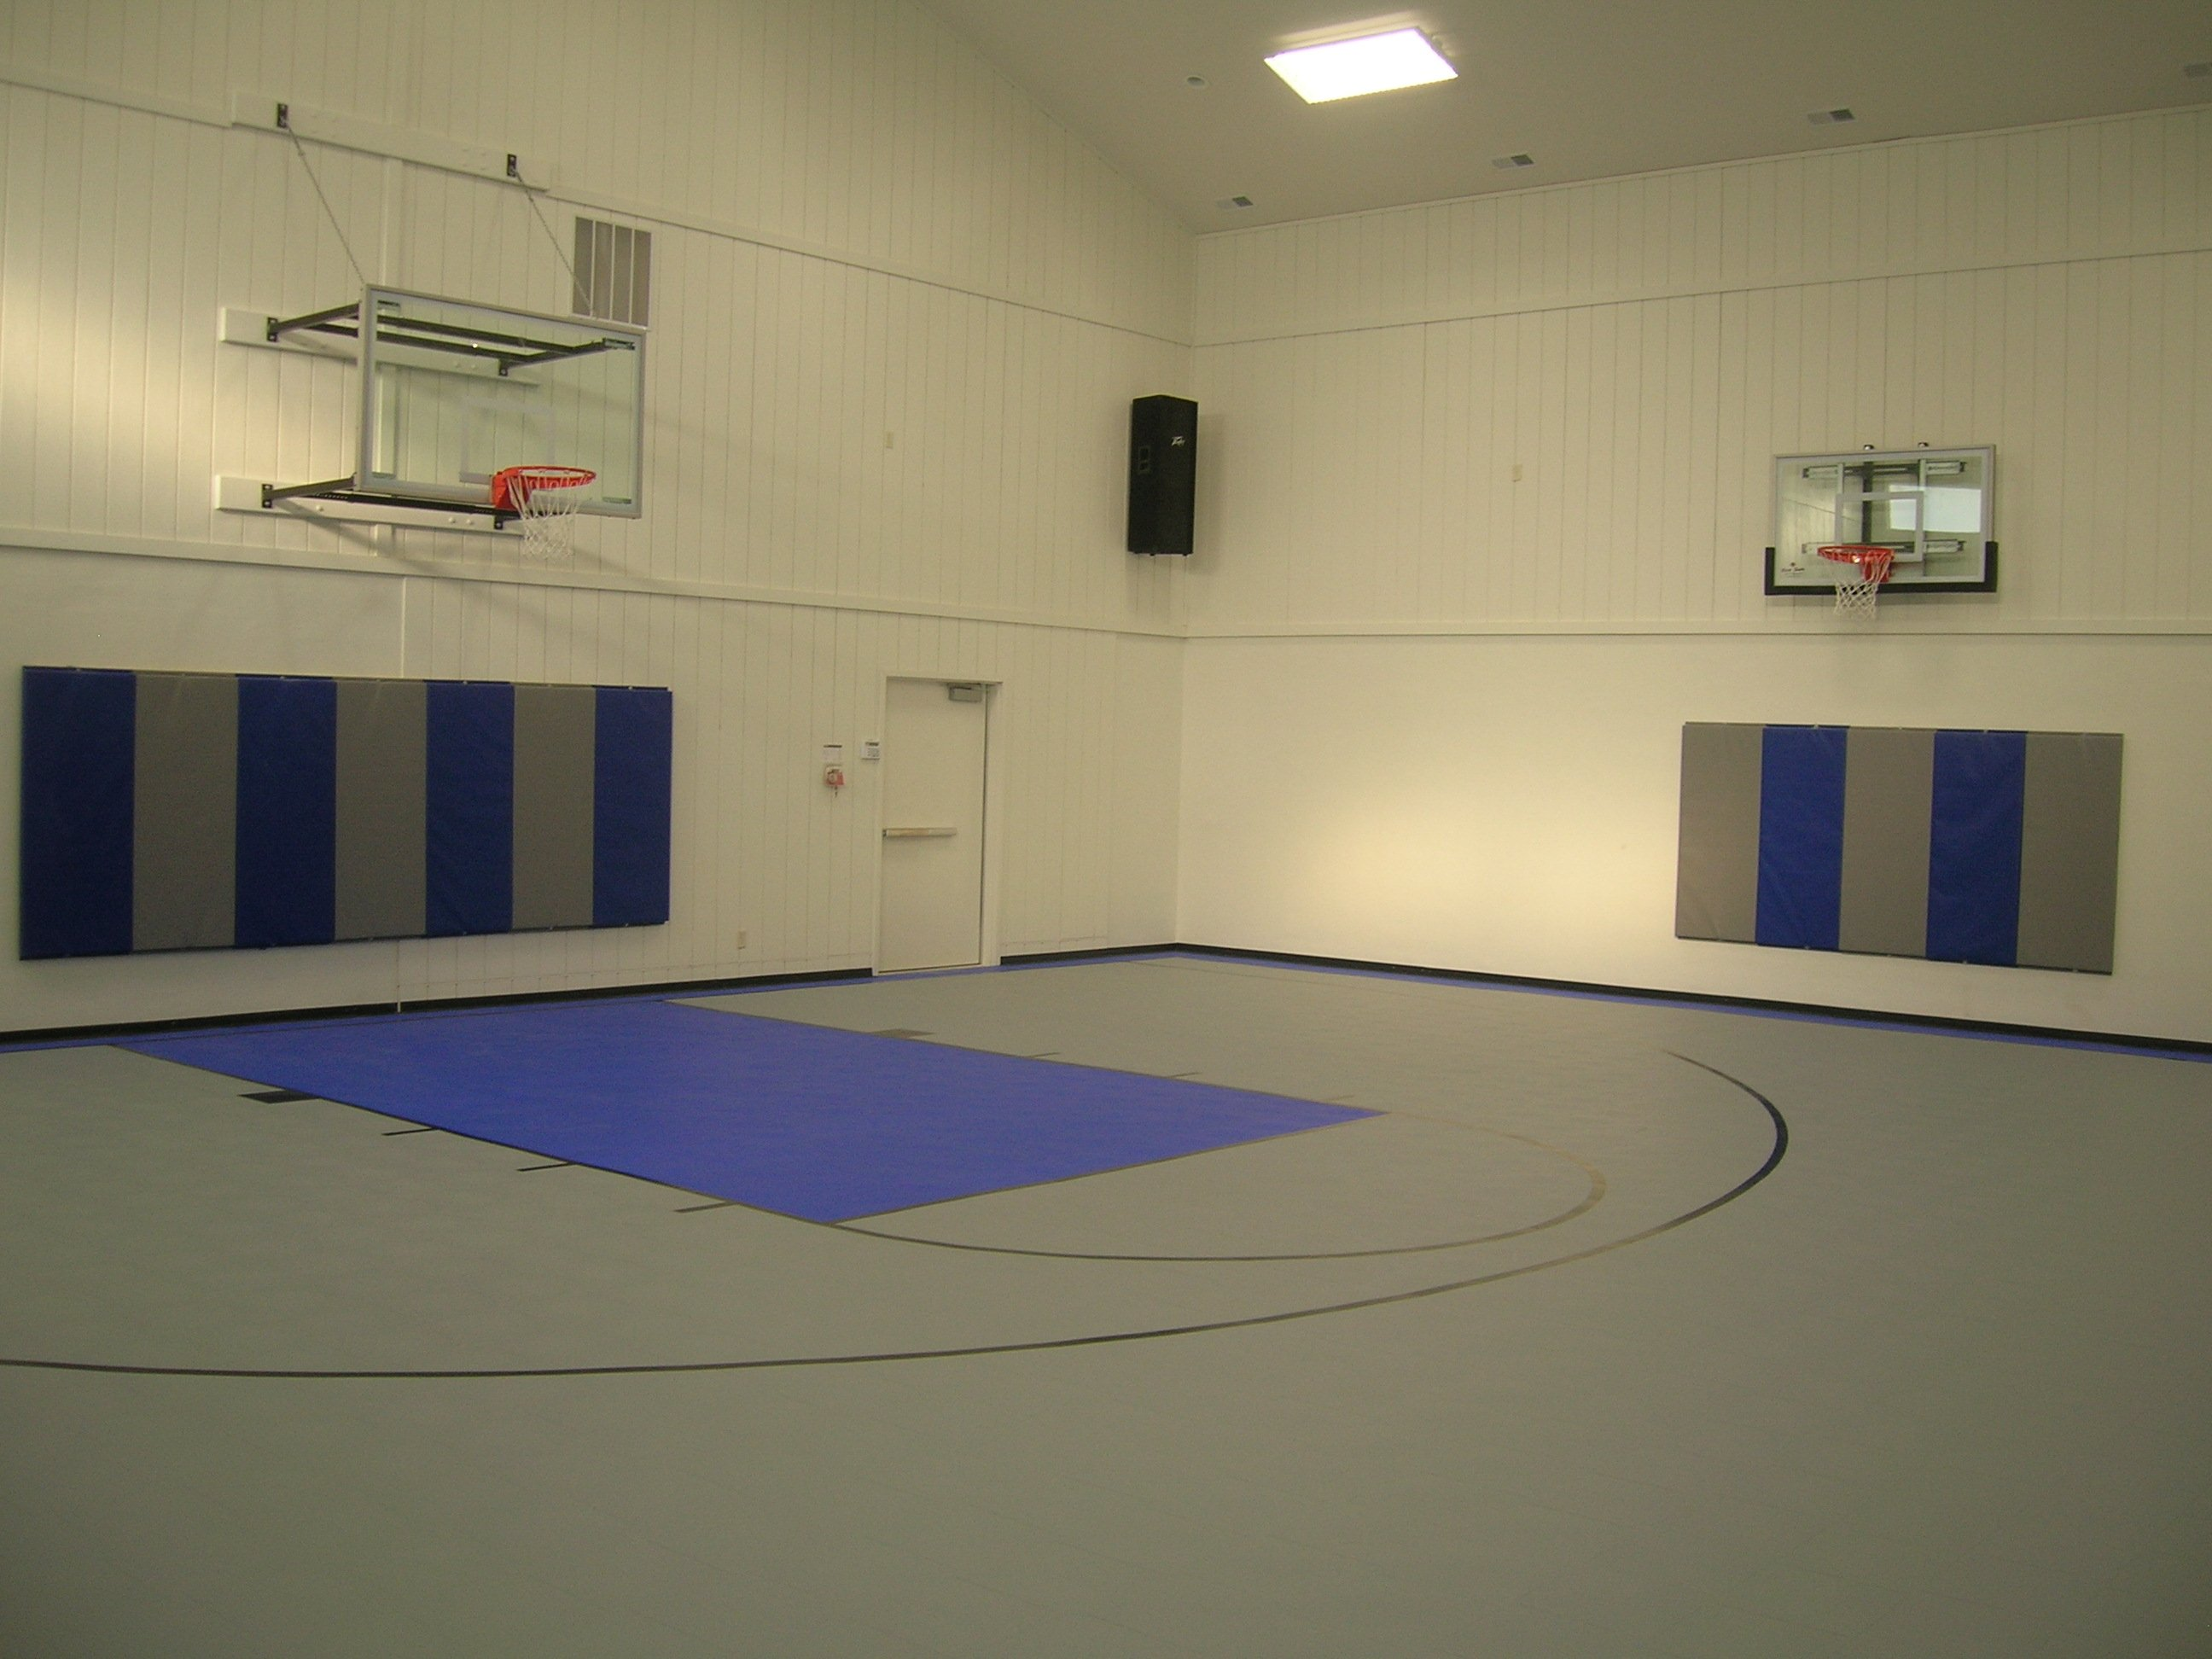 Indoor athletic flooring kcr enterprises llc for Indoor basketball court installation